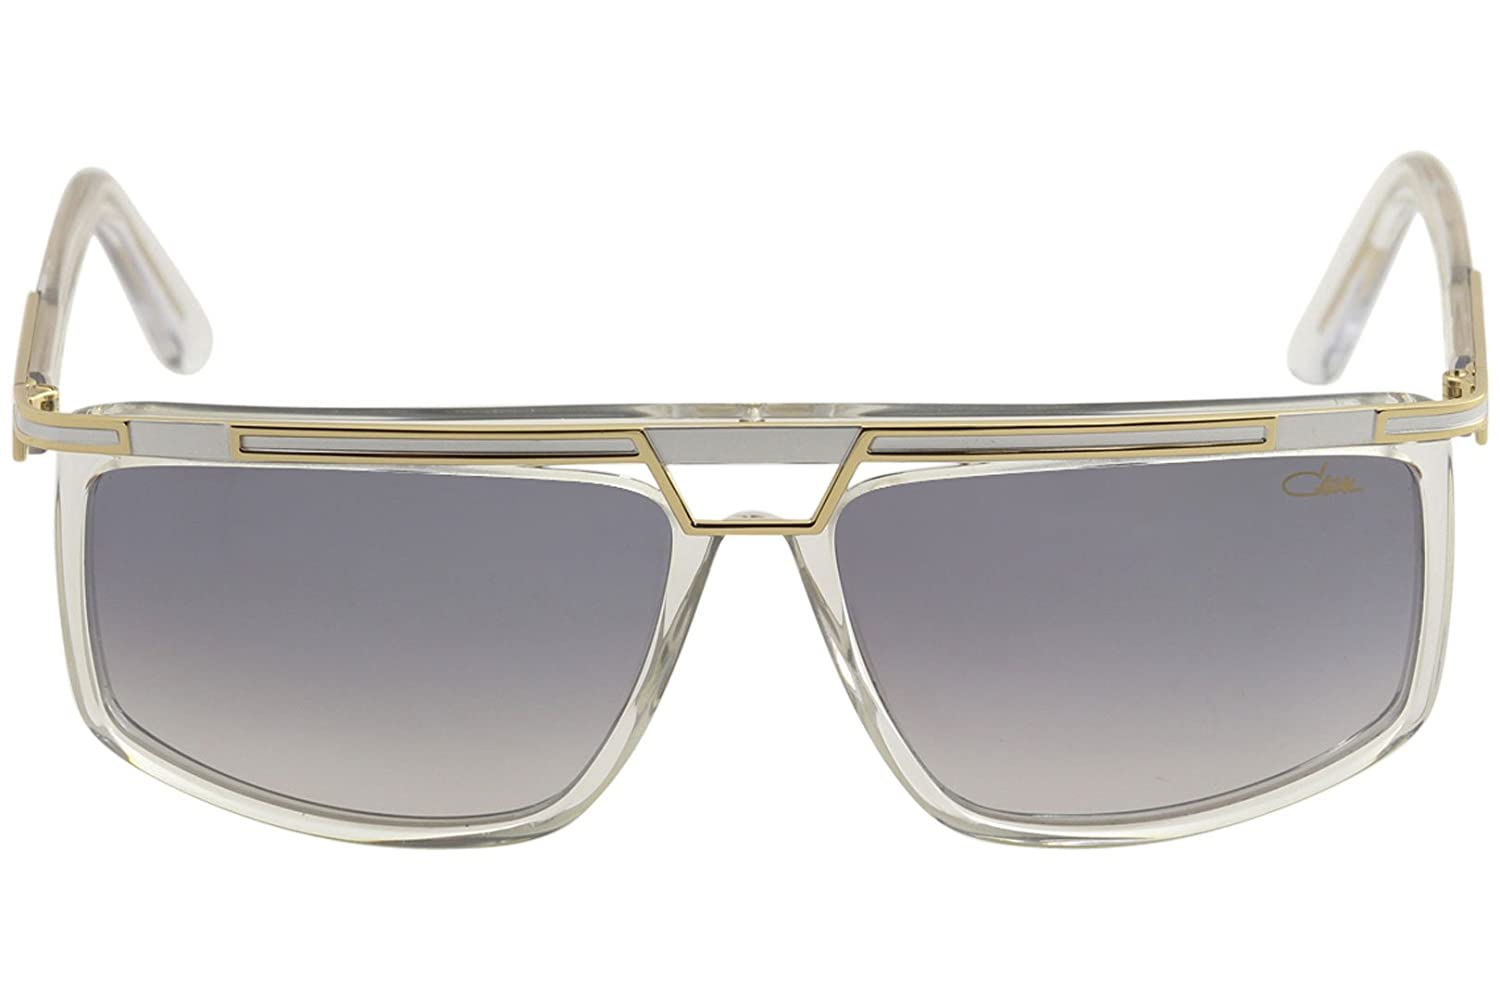 acf2f4d7bc3 Amazon.com  Cazal 8036 Sunglasses 003SG Crystal-Gold Light Grey Gradient  Lens 62mm  Clothing